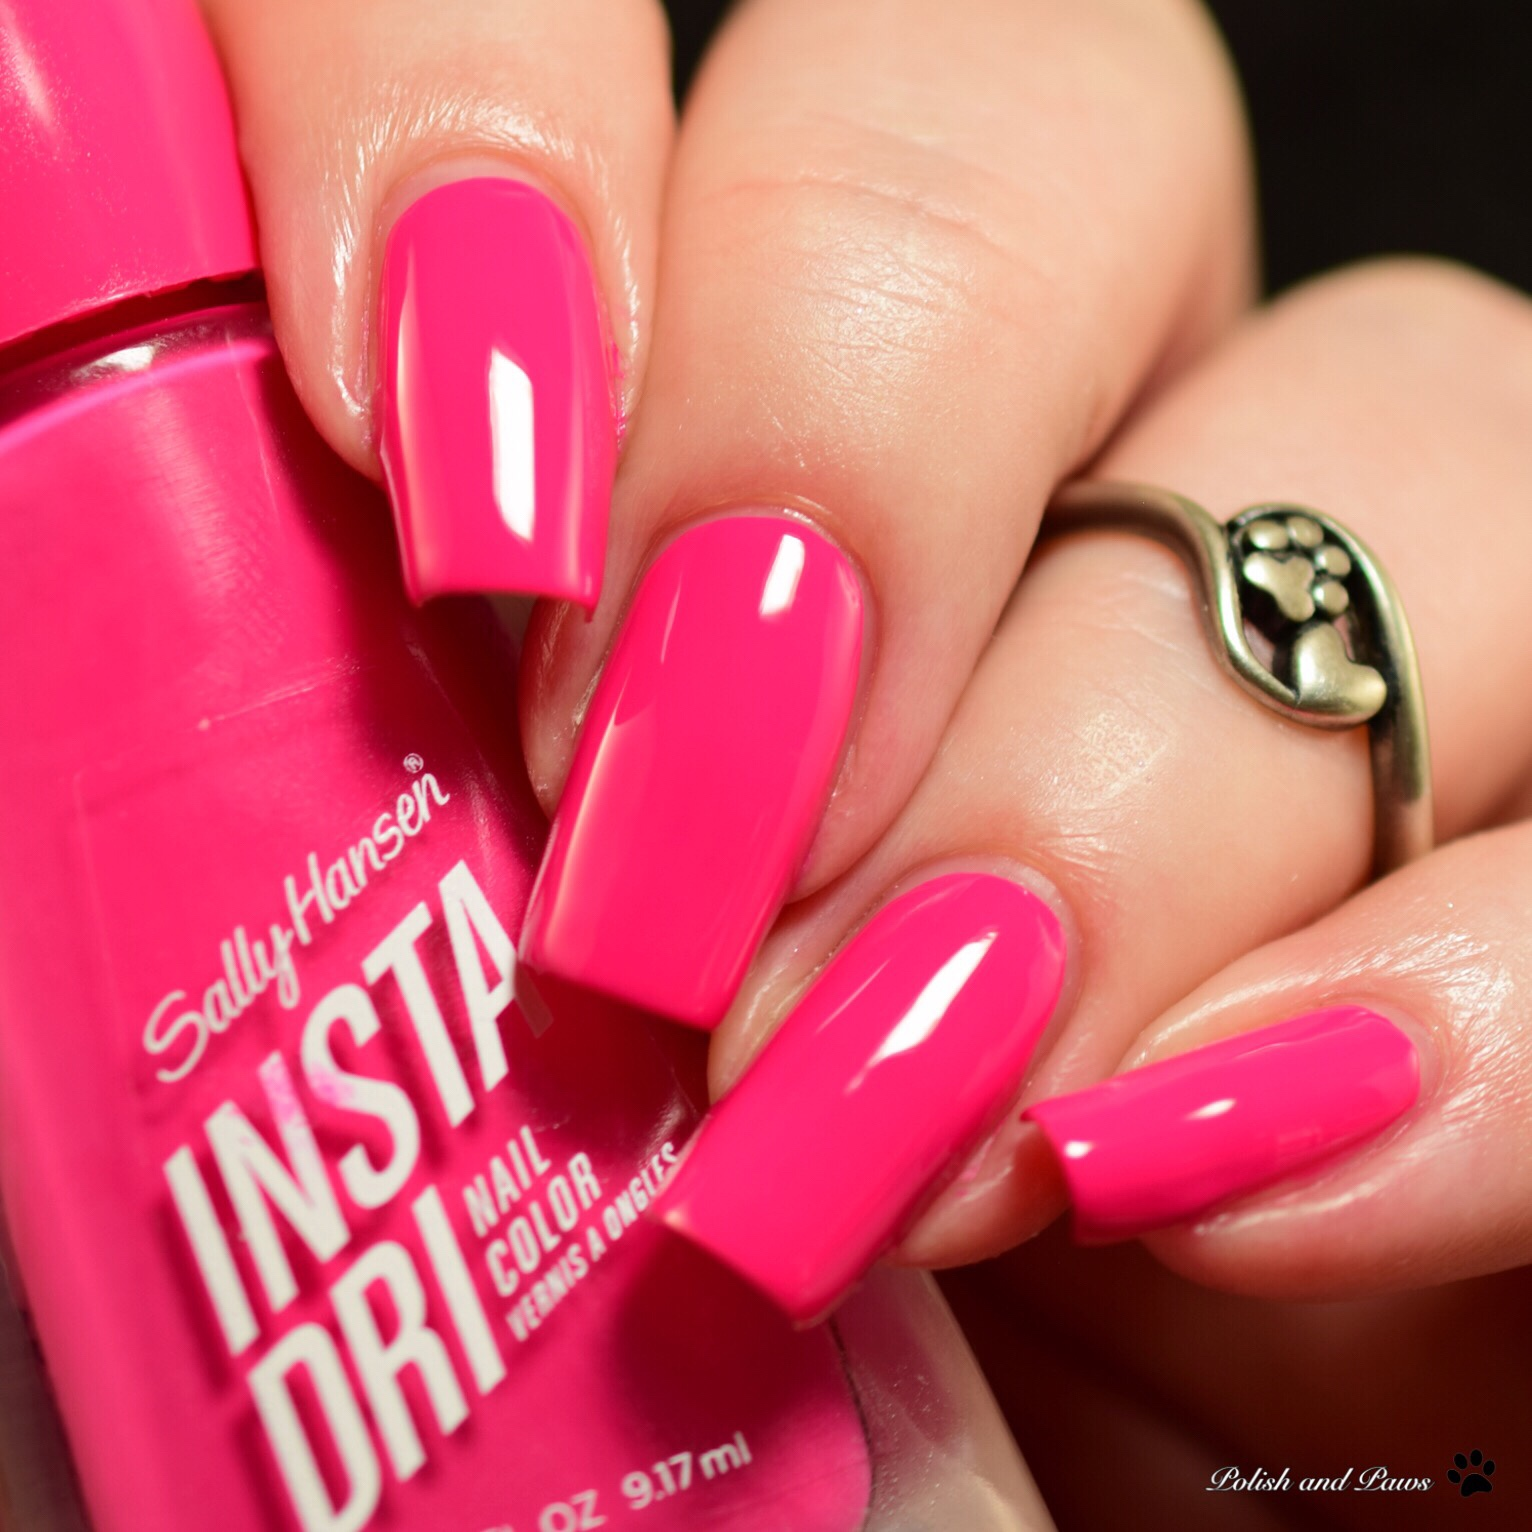 Sally Hansen Insta-Dri Watermelon Wizz